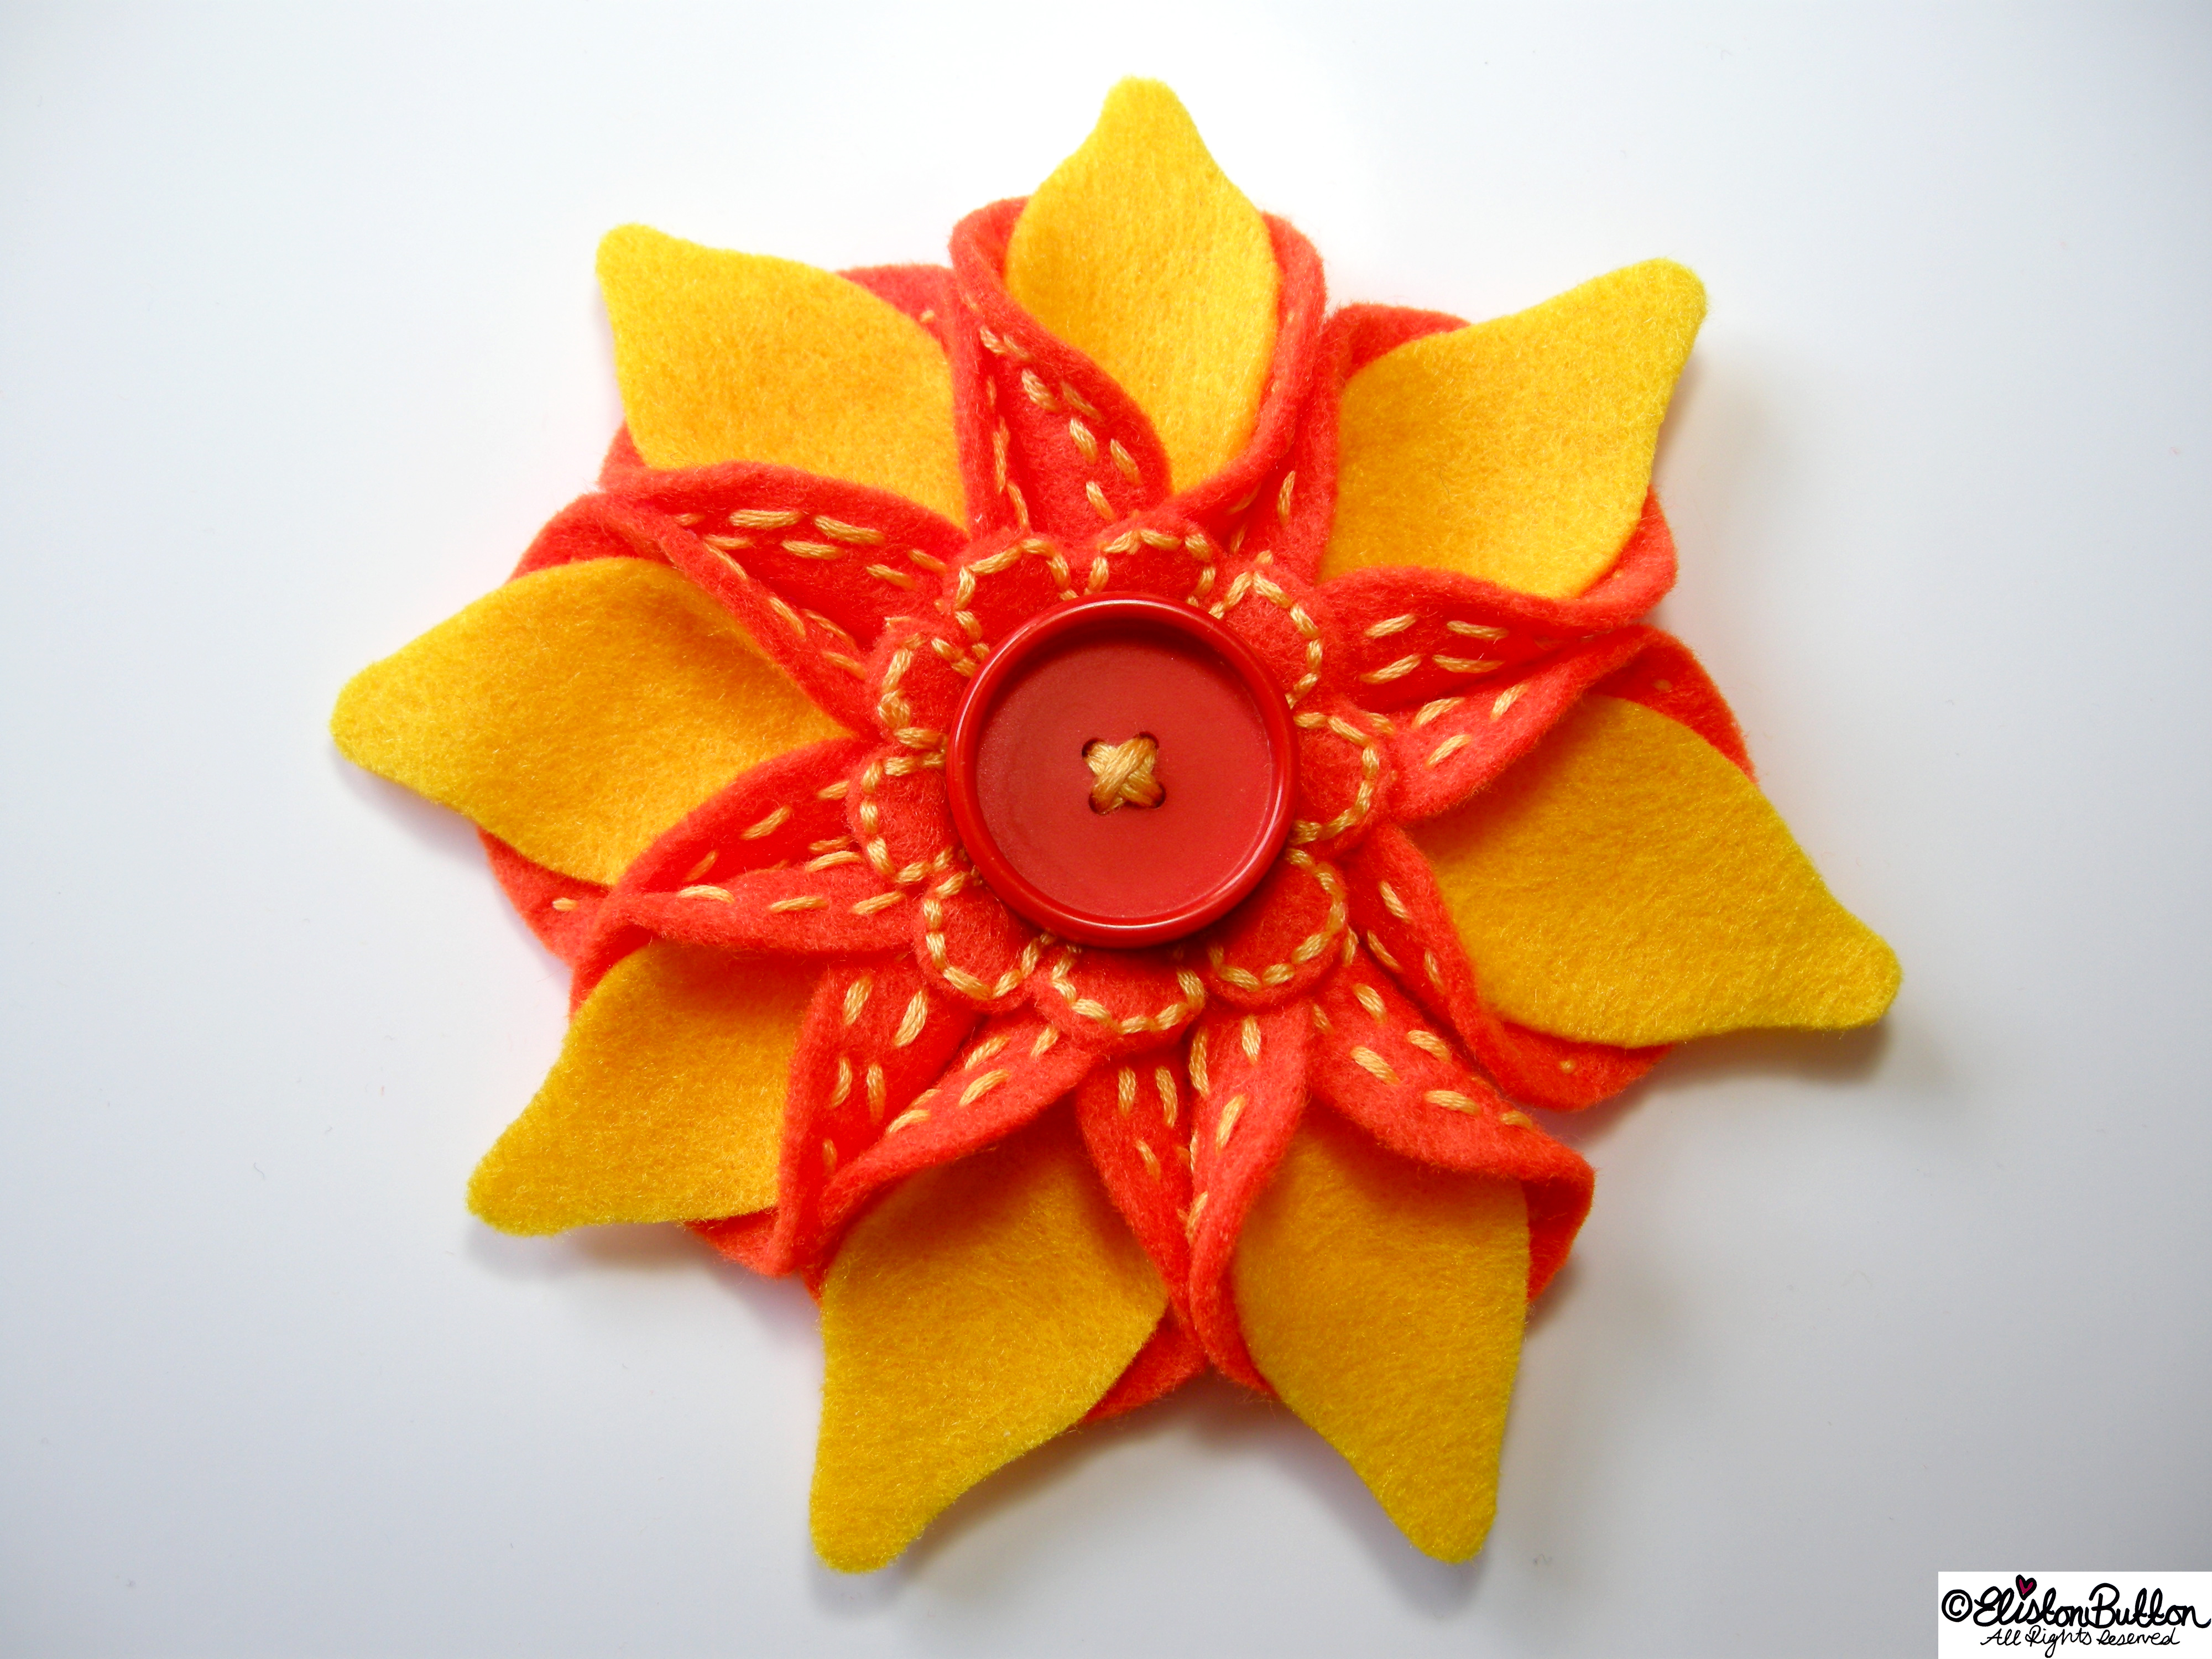 Oranges and Lemons Orange and Yellow Embroidered Felt Flower Brooch - 27 Before 27 - Oranges and Lemons at www.elistonbutton.com - Eliston Button - That Crafty Kid – Art, Design, Craft & Adventure.